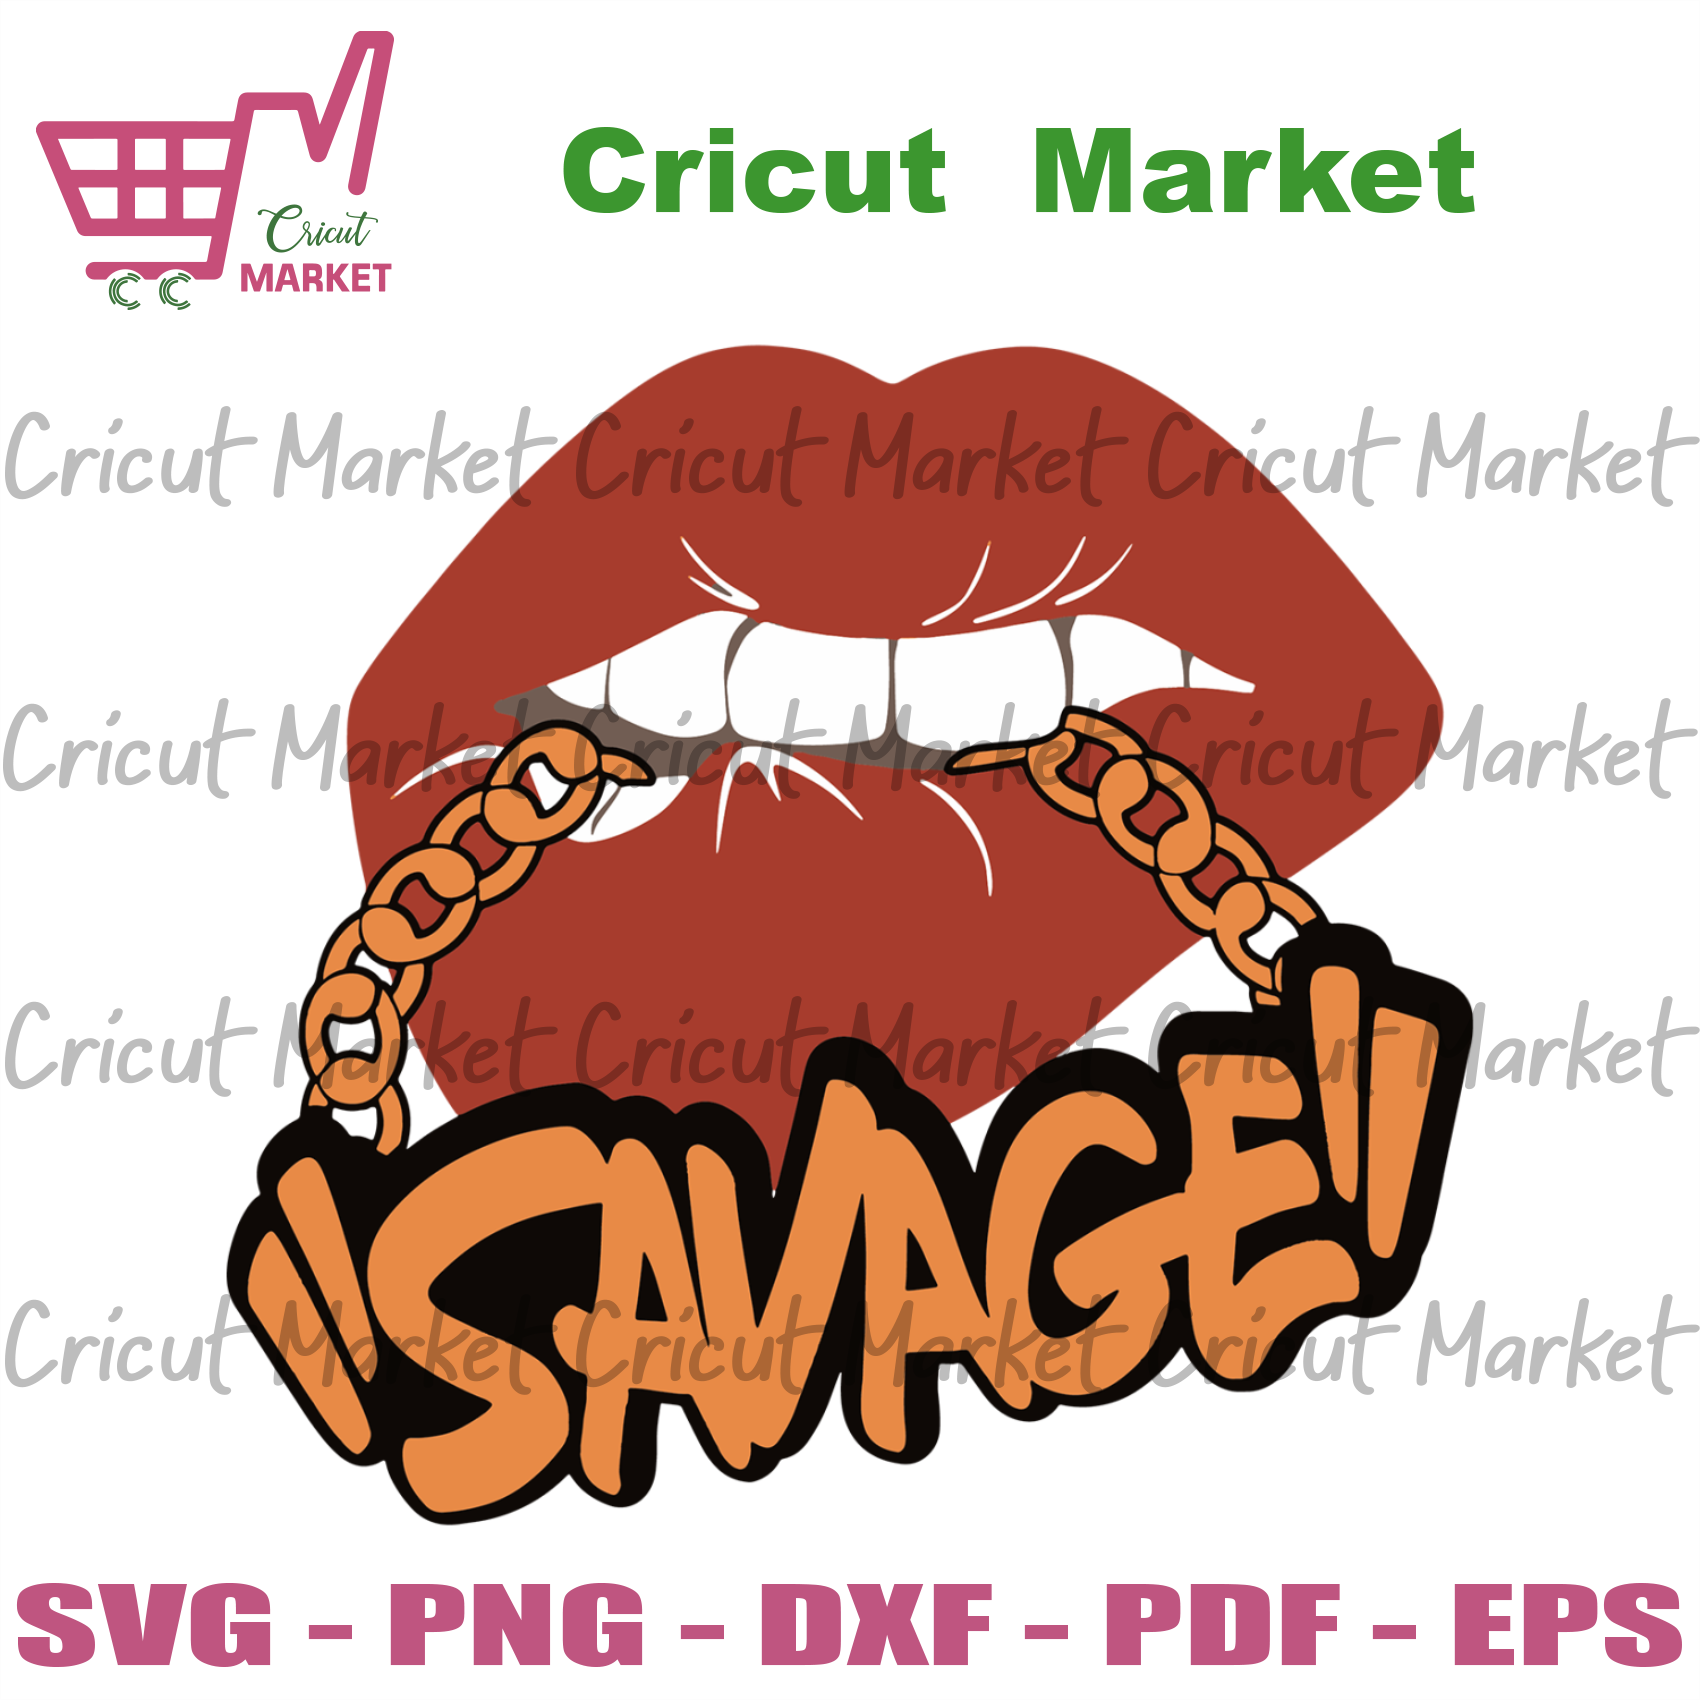 Savage Lips Svg, Black Girl Svg, Classy Svg, Being Black Is Dope, Blacknificent Svg, I Love Melanin, I Love Back, Black Girl, Black Woman, Black Melanin, Black Owned, Savage Svg, Dripping Lip